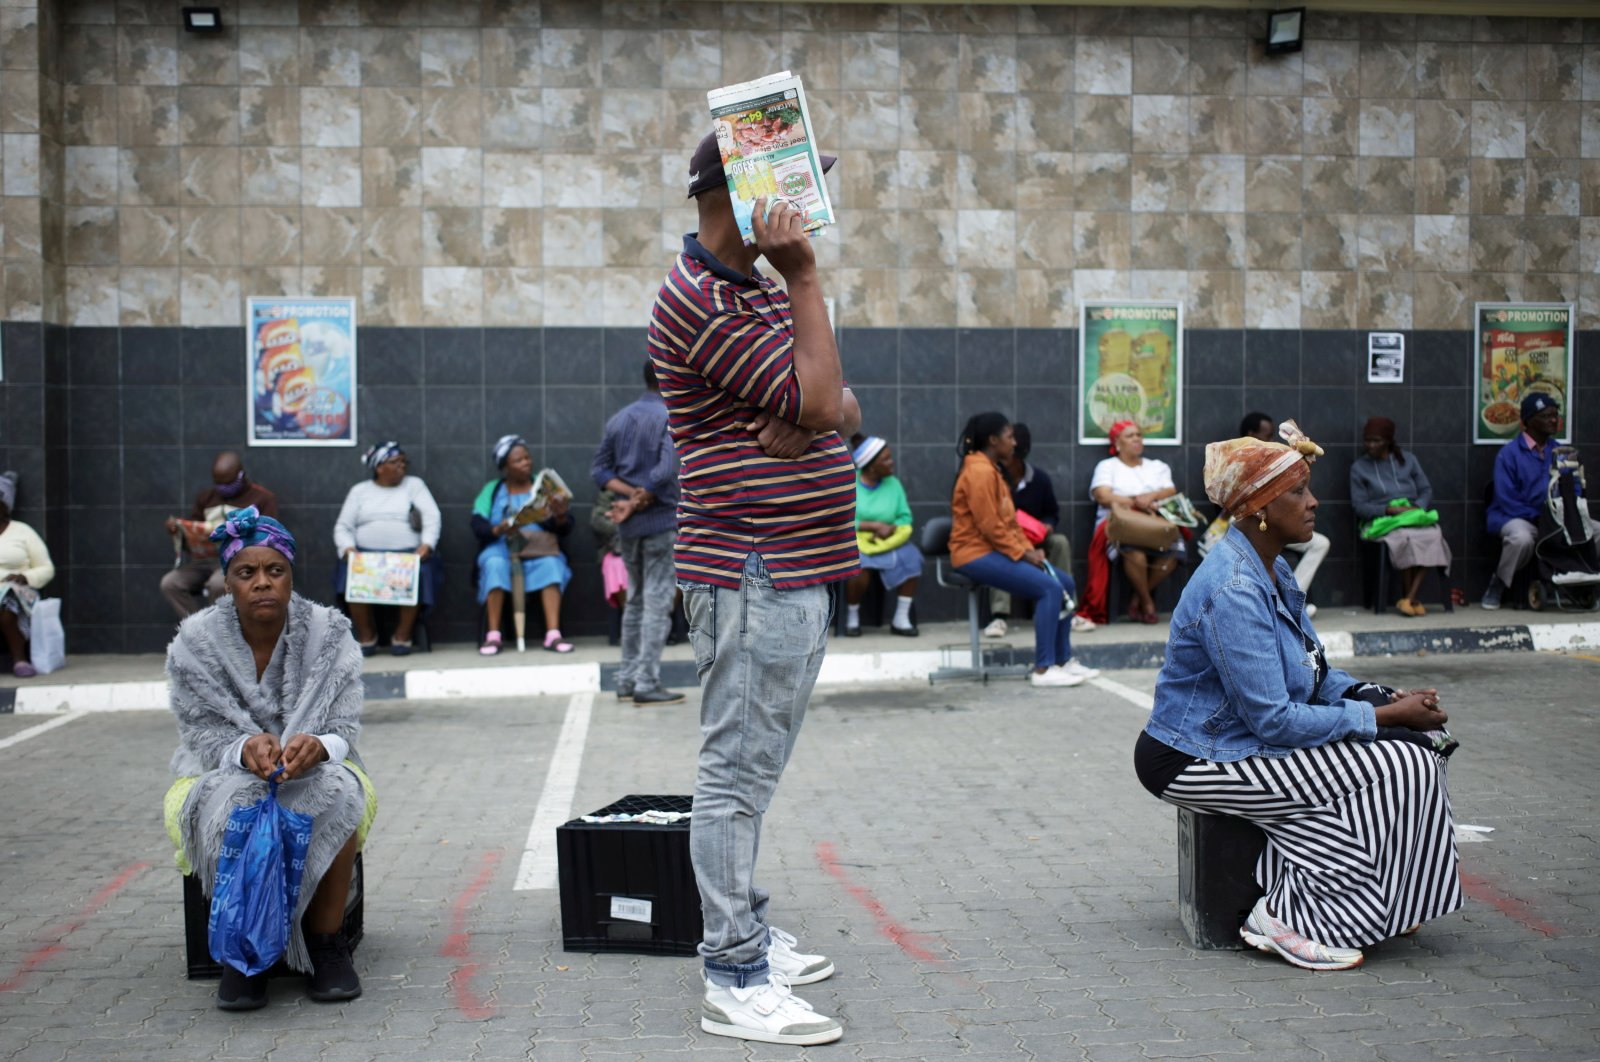 Shoppers queue in line with social distance rules during a 21-day nationwide COVID-19 lockdown in Soweto, South Africa, March 30, 2020. (Reuters Photo)